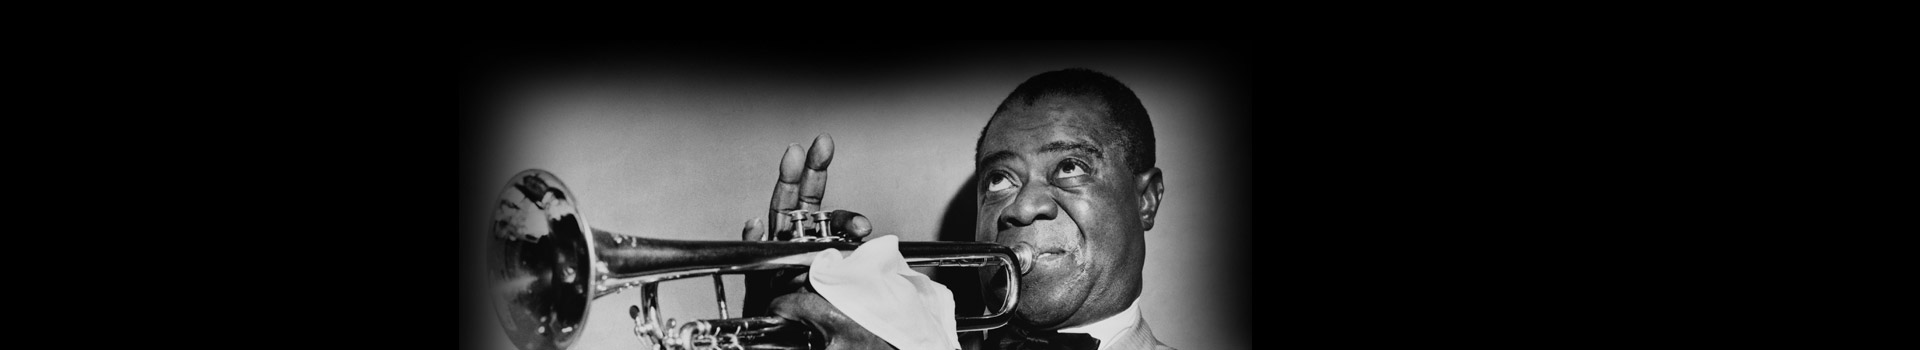 The Wonderful Music of Louis Armstrong banner image